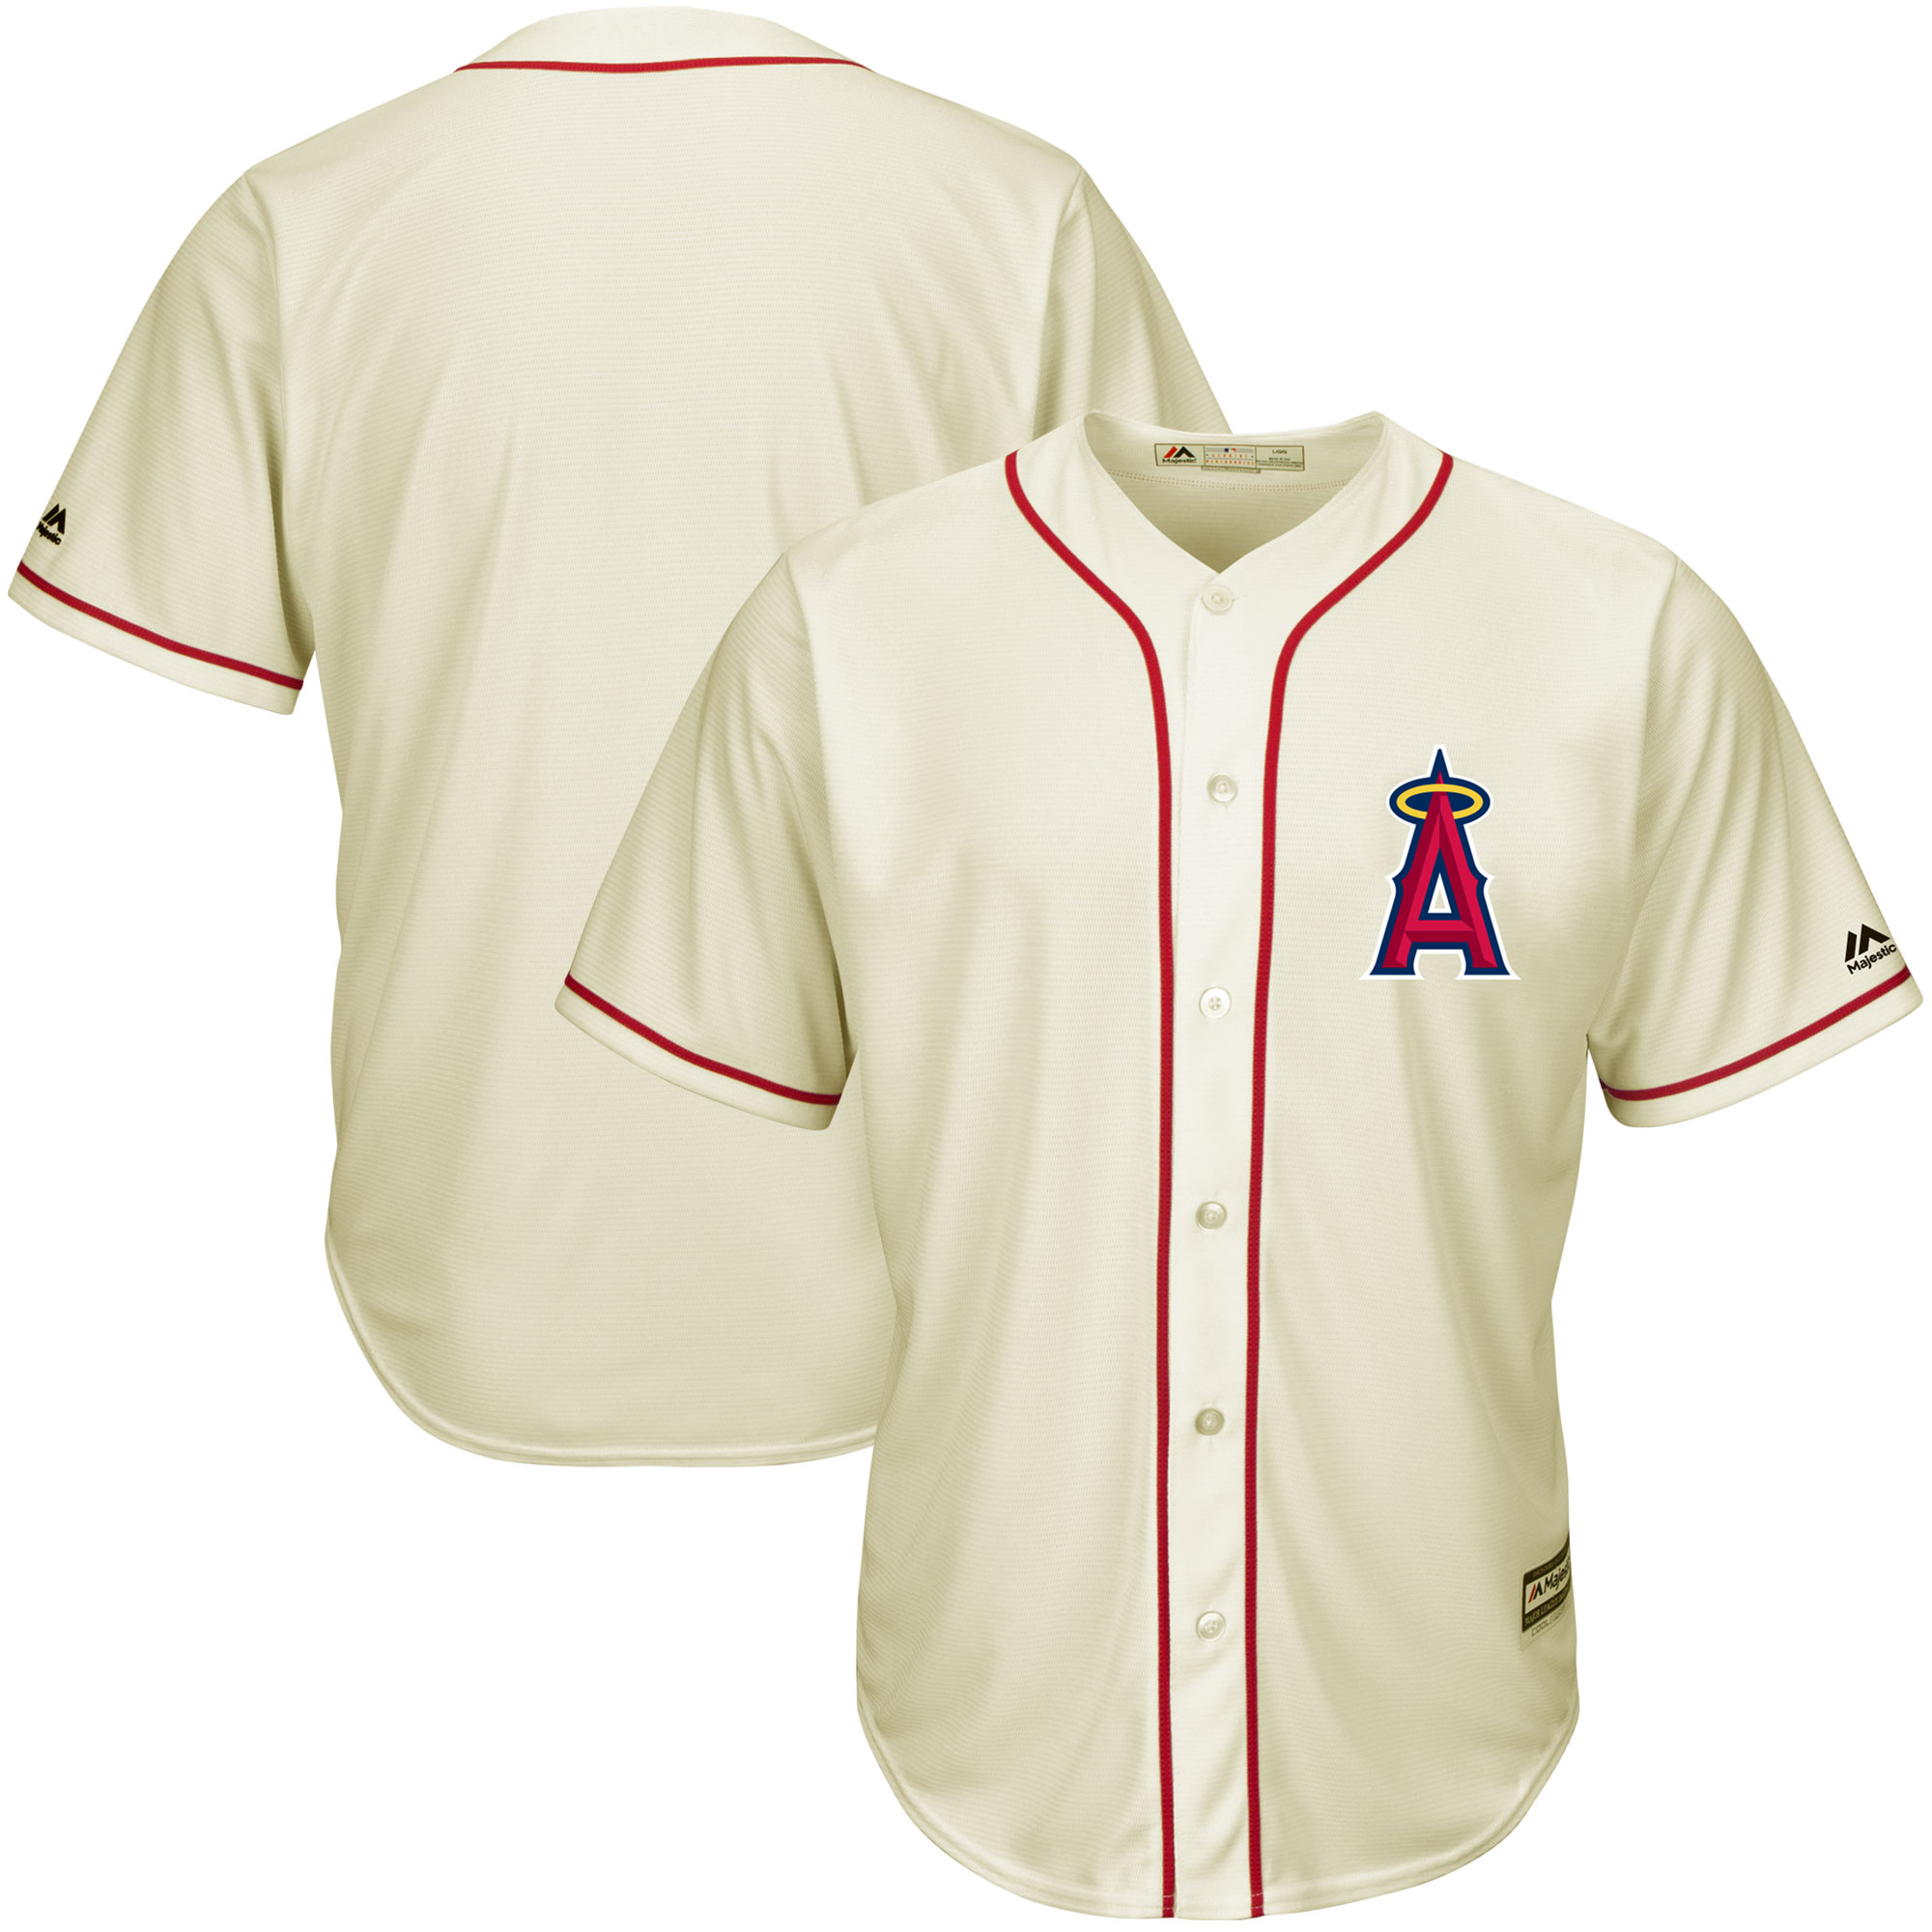 Los Angeles Angels Majestic Cool Base Ivory Fashion Team Jersey - Cream/Red